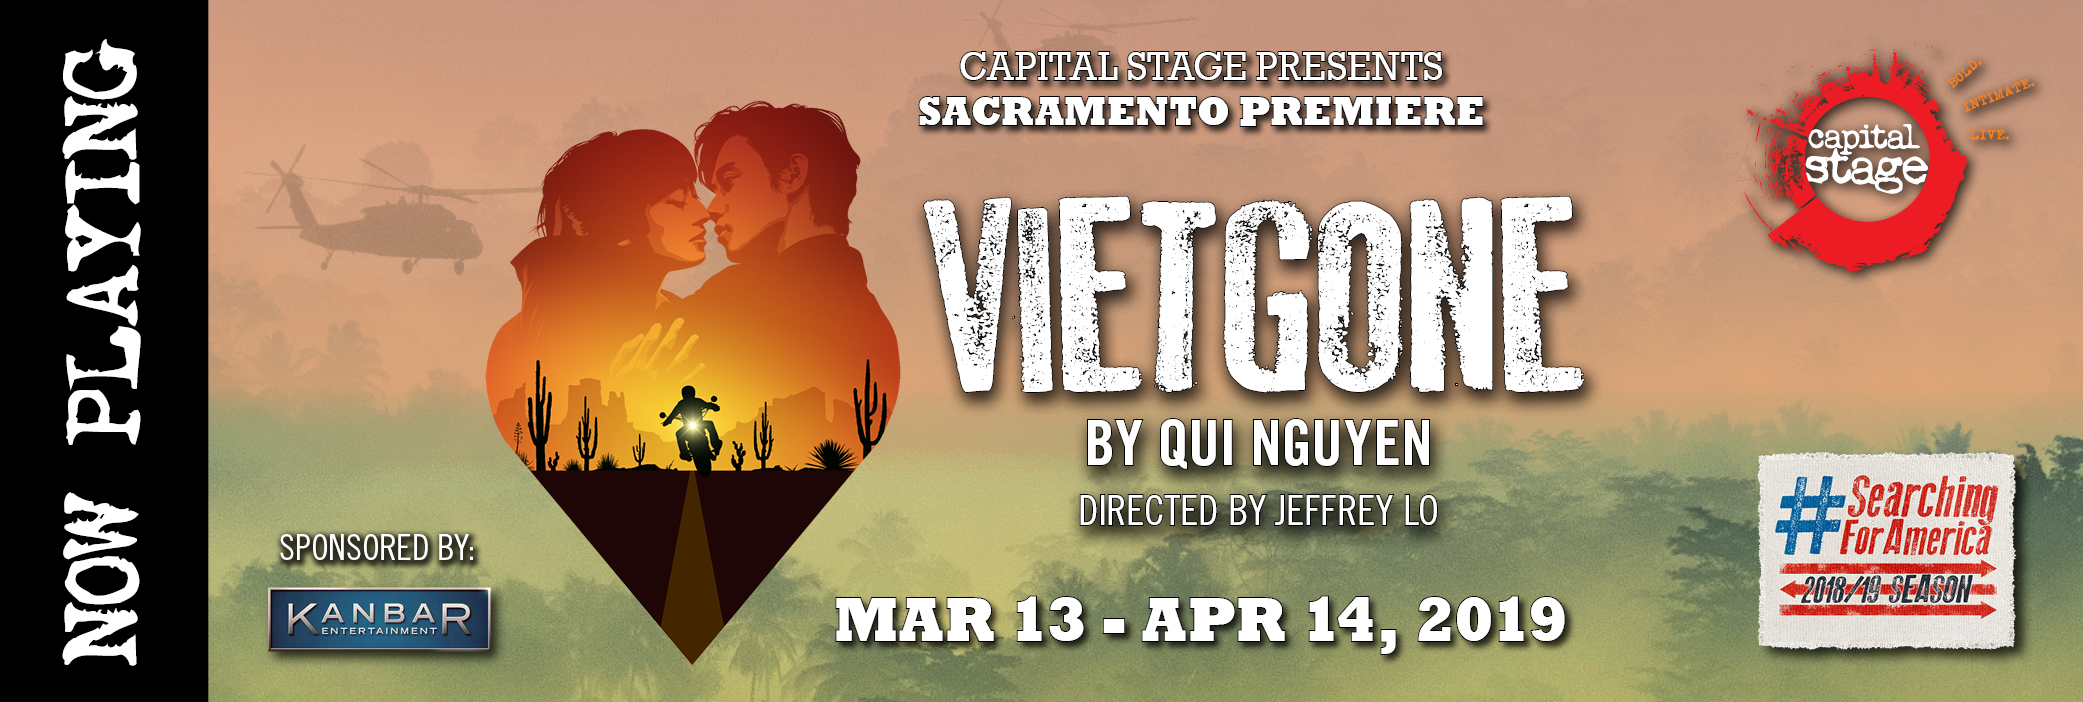 Now Playing: VIETGONE by Qui Nguyen